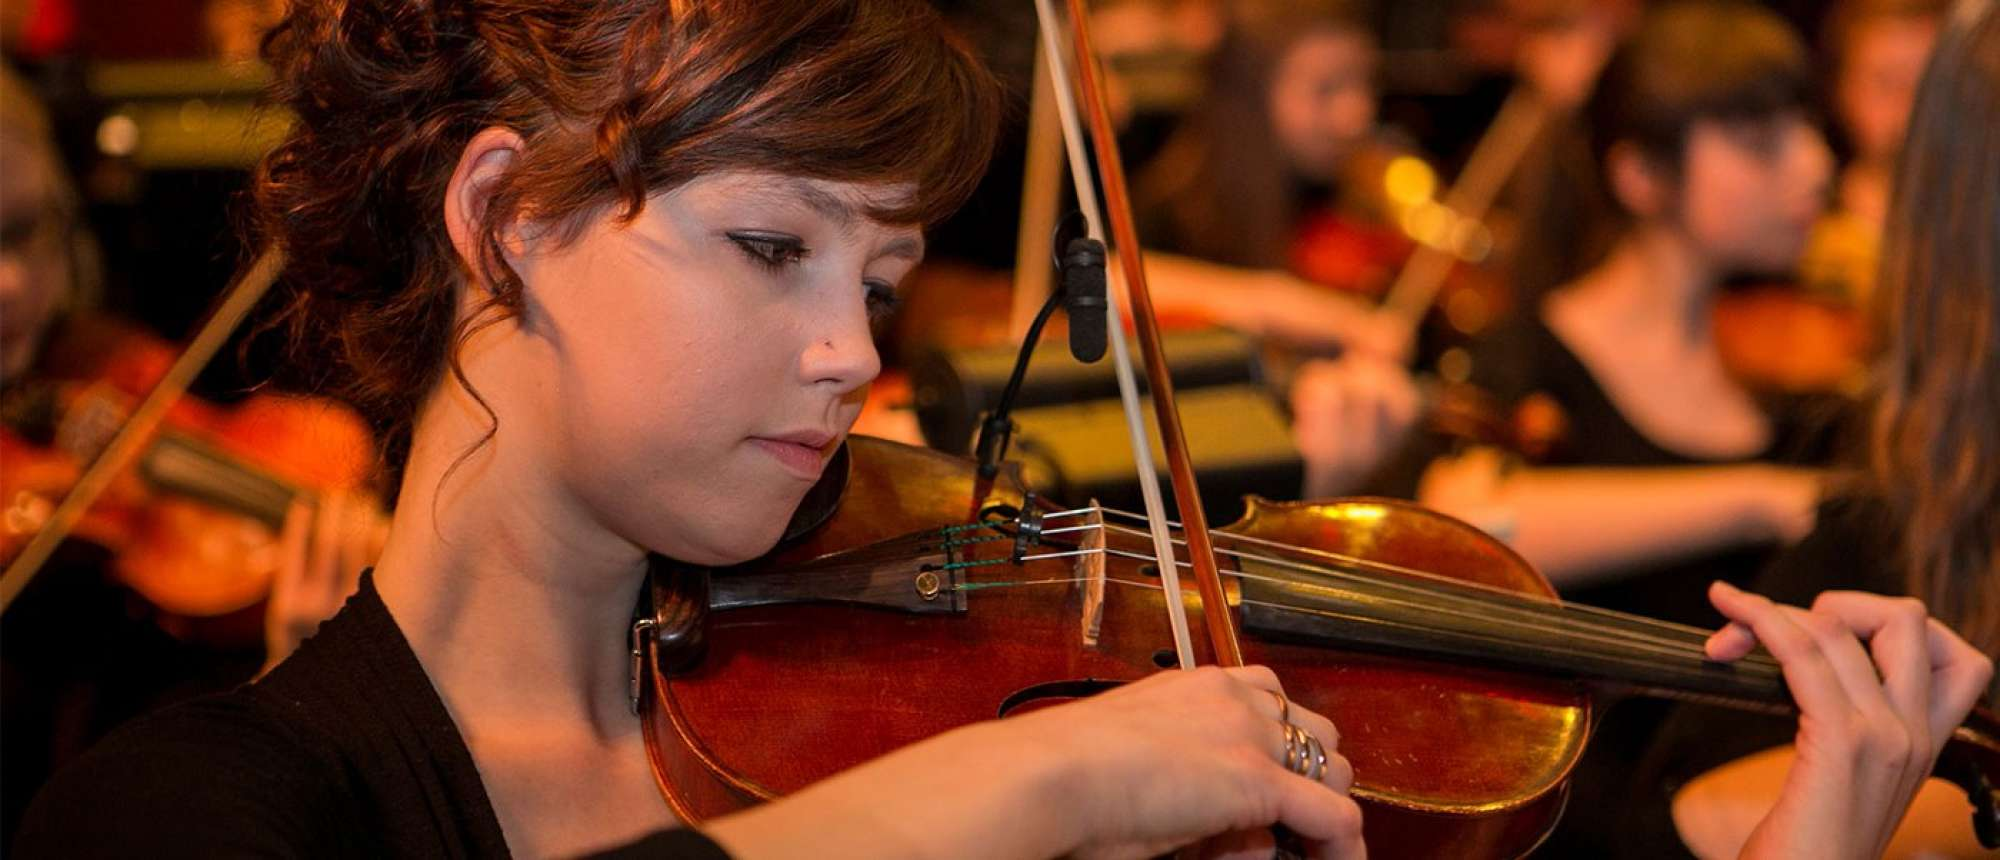 A student playing the violin.